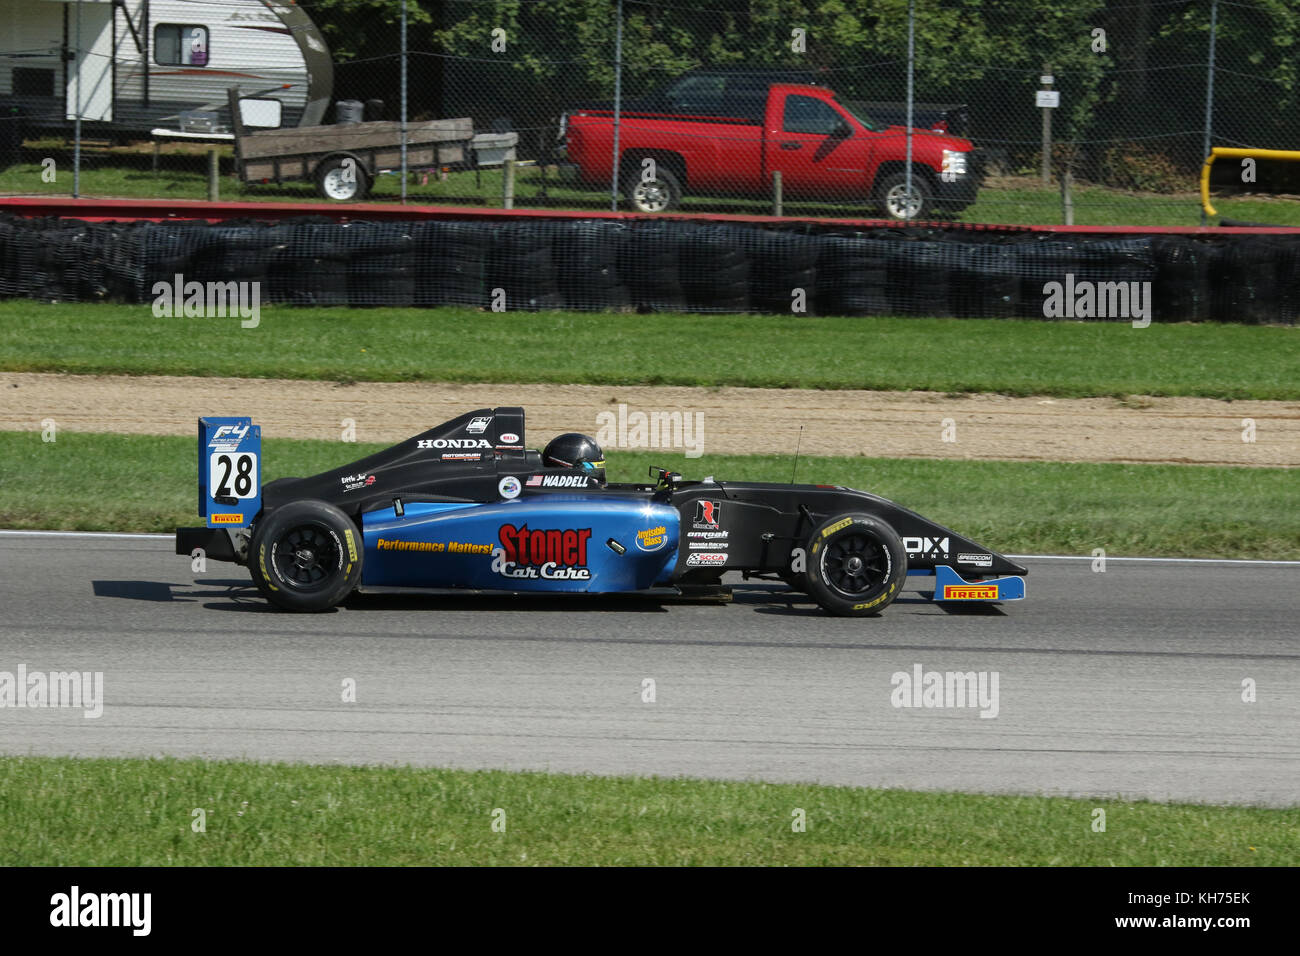 Ben Waddell. Car 28. Sponsor Stoner Car Care. Formula 4 Race. Mid-Ohio Sports Car Course. Lexington, Mansfield, - Stock Image